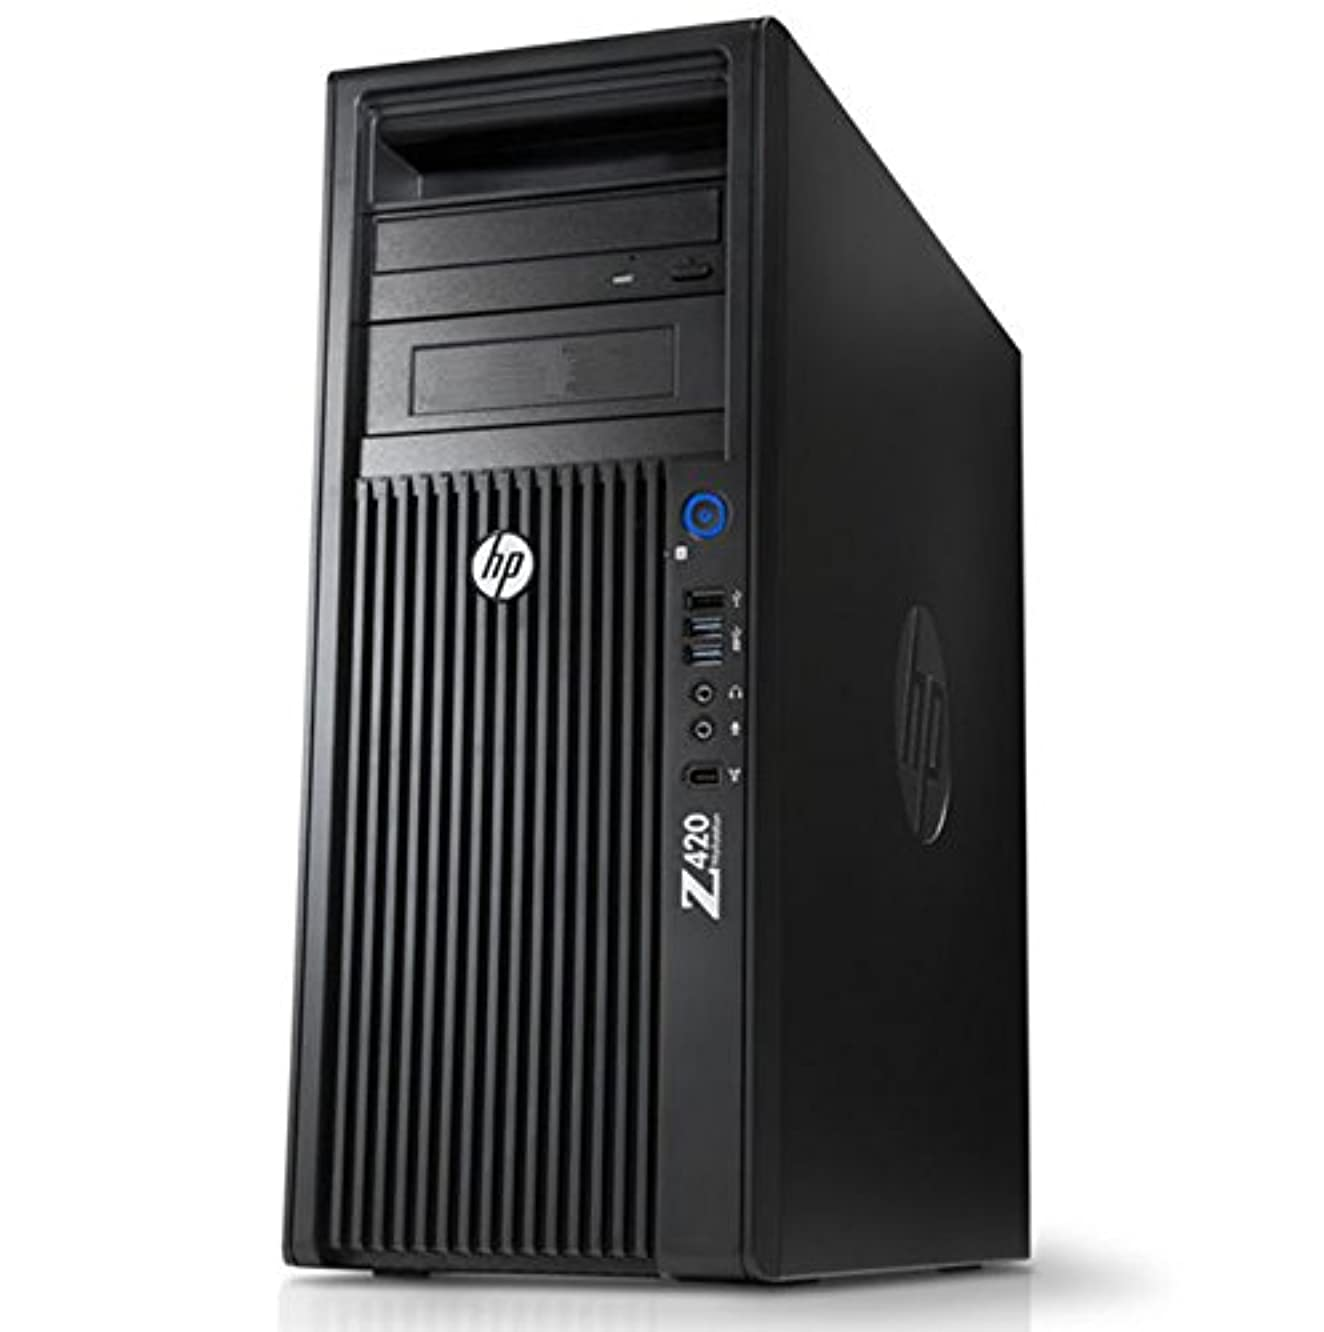 Xeon 4-Core 3D Modeling HP Z420 Workstation AutoCAD System, E5-1607 3.0GHz, 2TB 7200rpm HDD, 64GB DDR3 Ram, 8GB Nvidia Quadro P4000, Windows 7 Pro(Certified Refurbished)